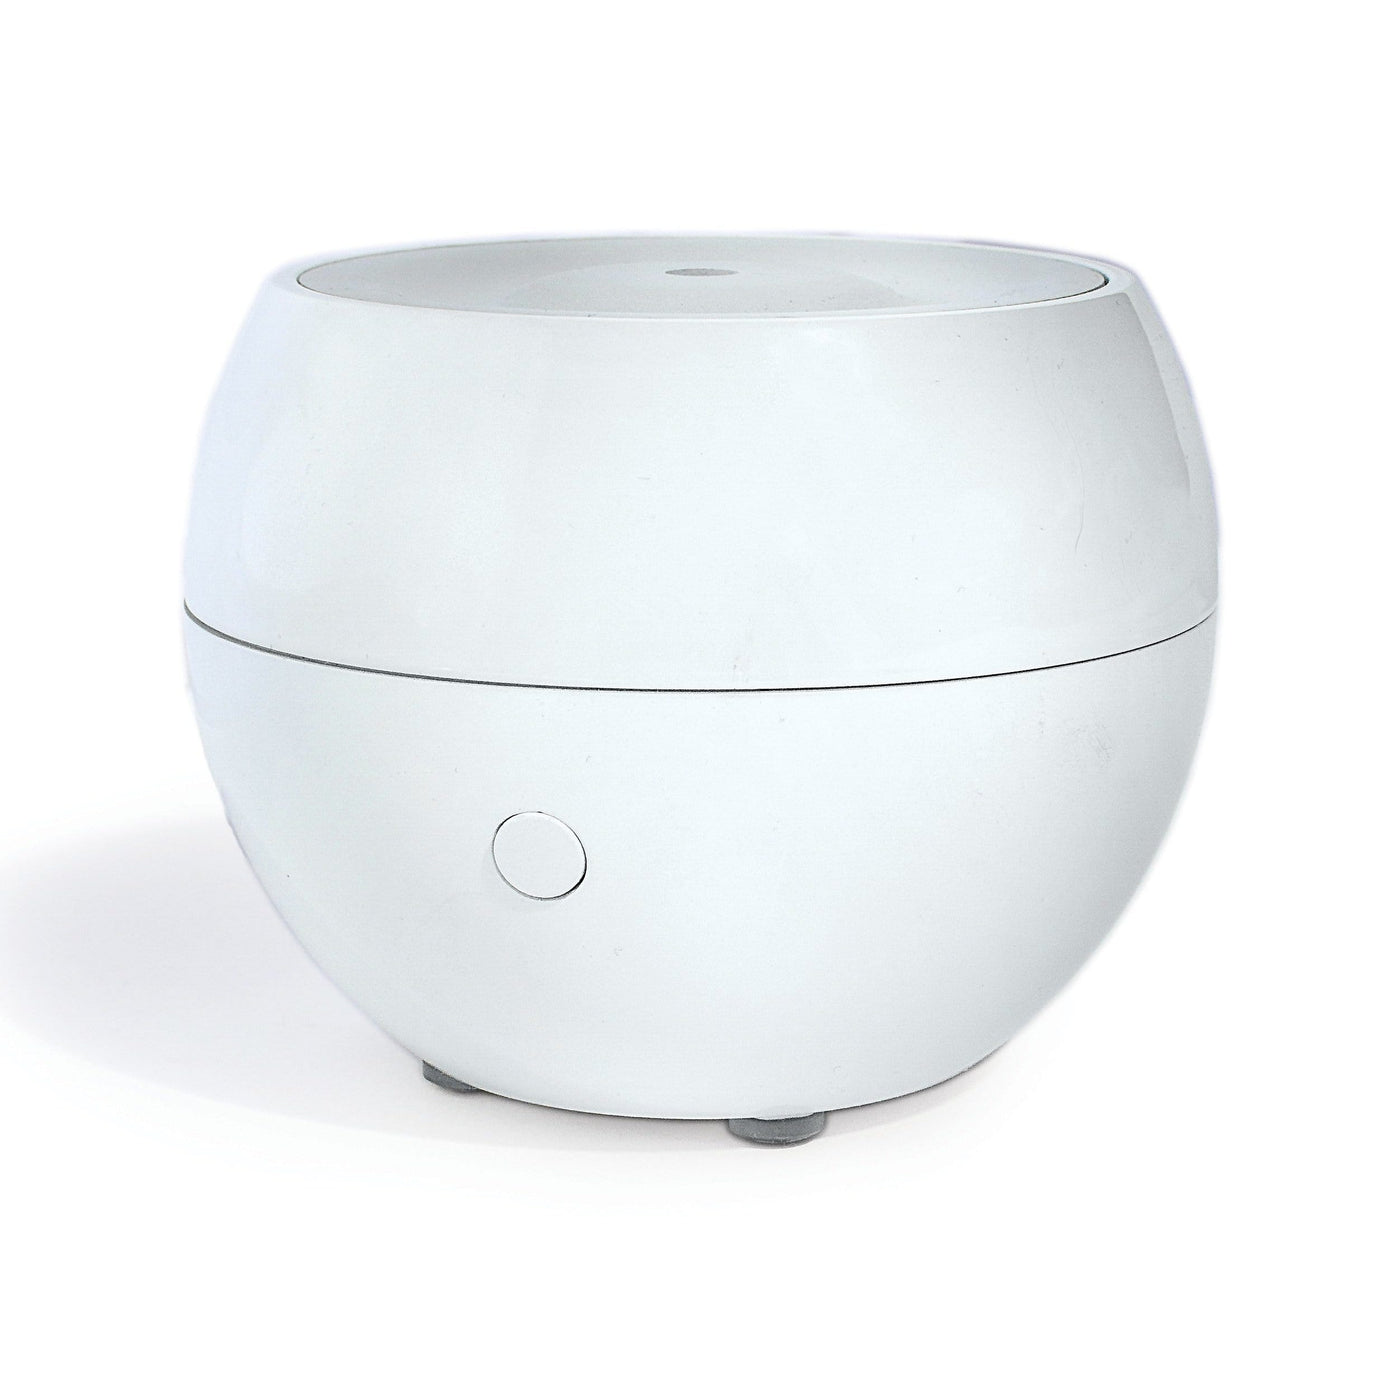 GreenAir Breezy Aromatherapy Diffuser-Diffusers-Ice 'N' Fire